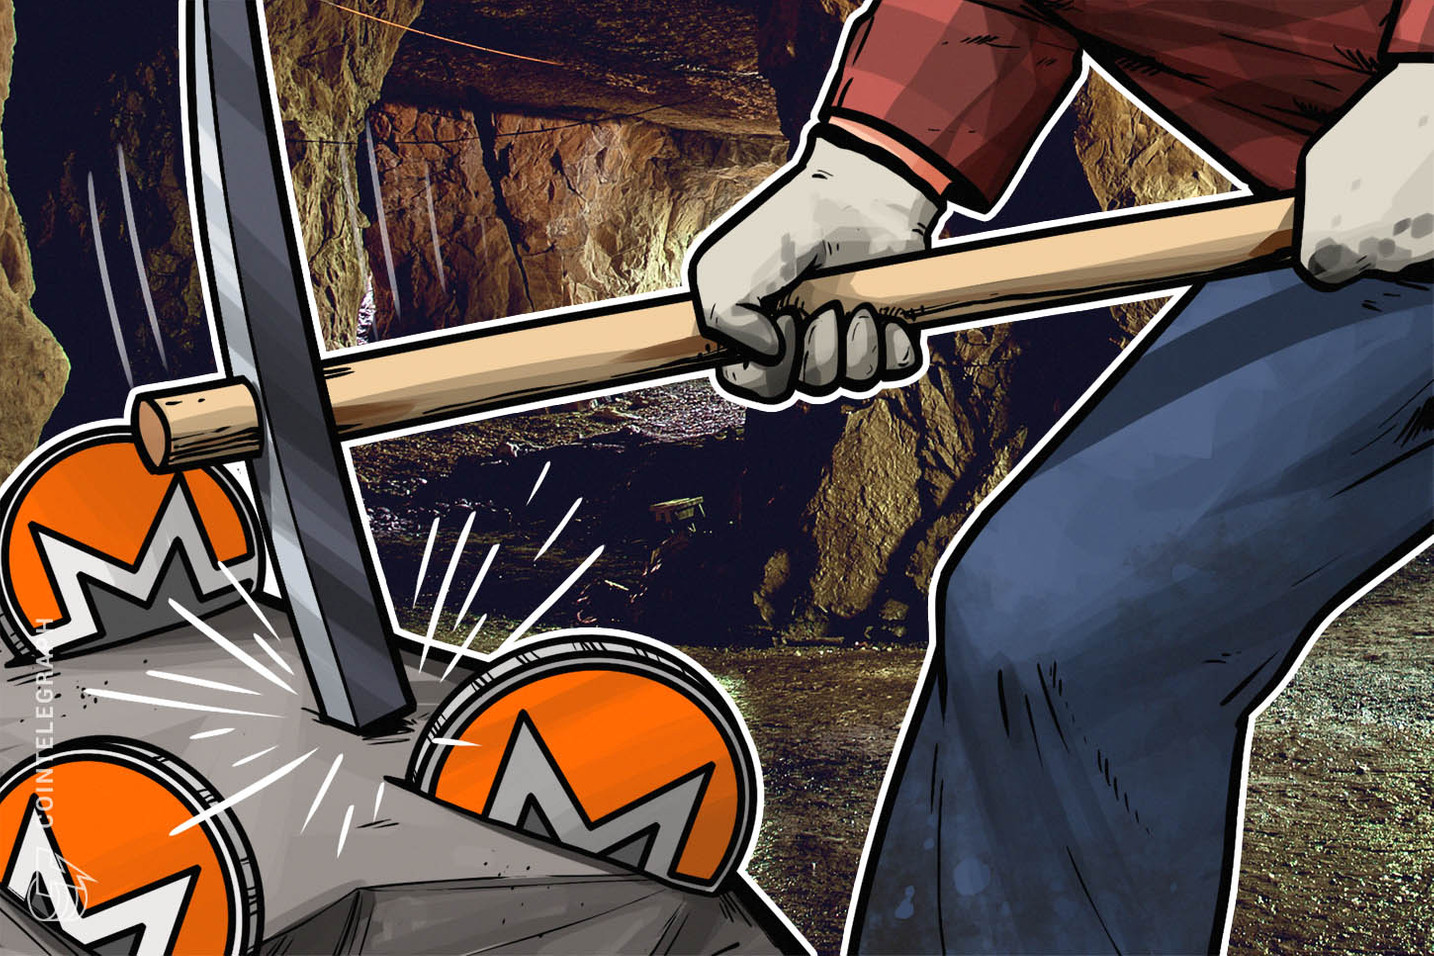 Monero Hard Fork Appears Successful As Devs Shun Bitmain's ASIC Miners